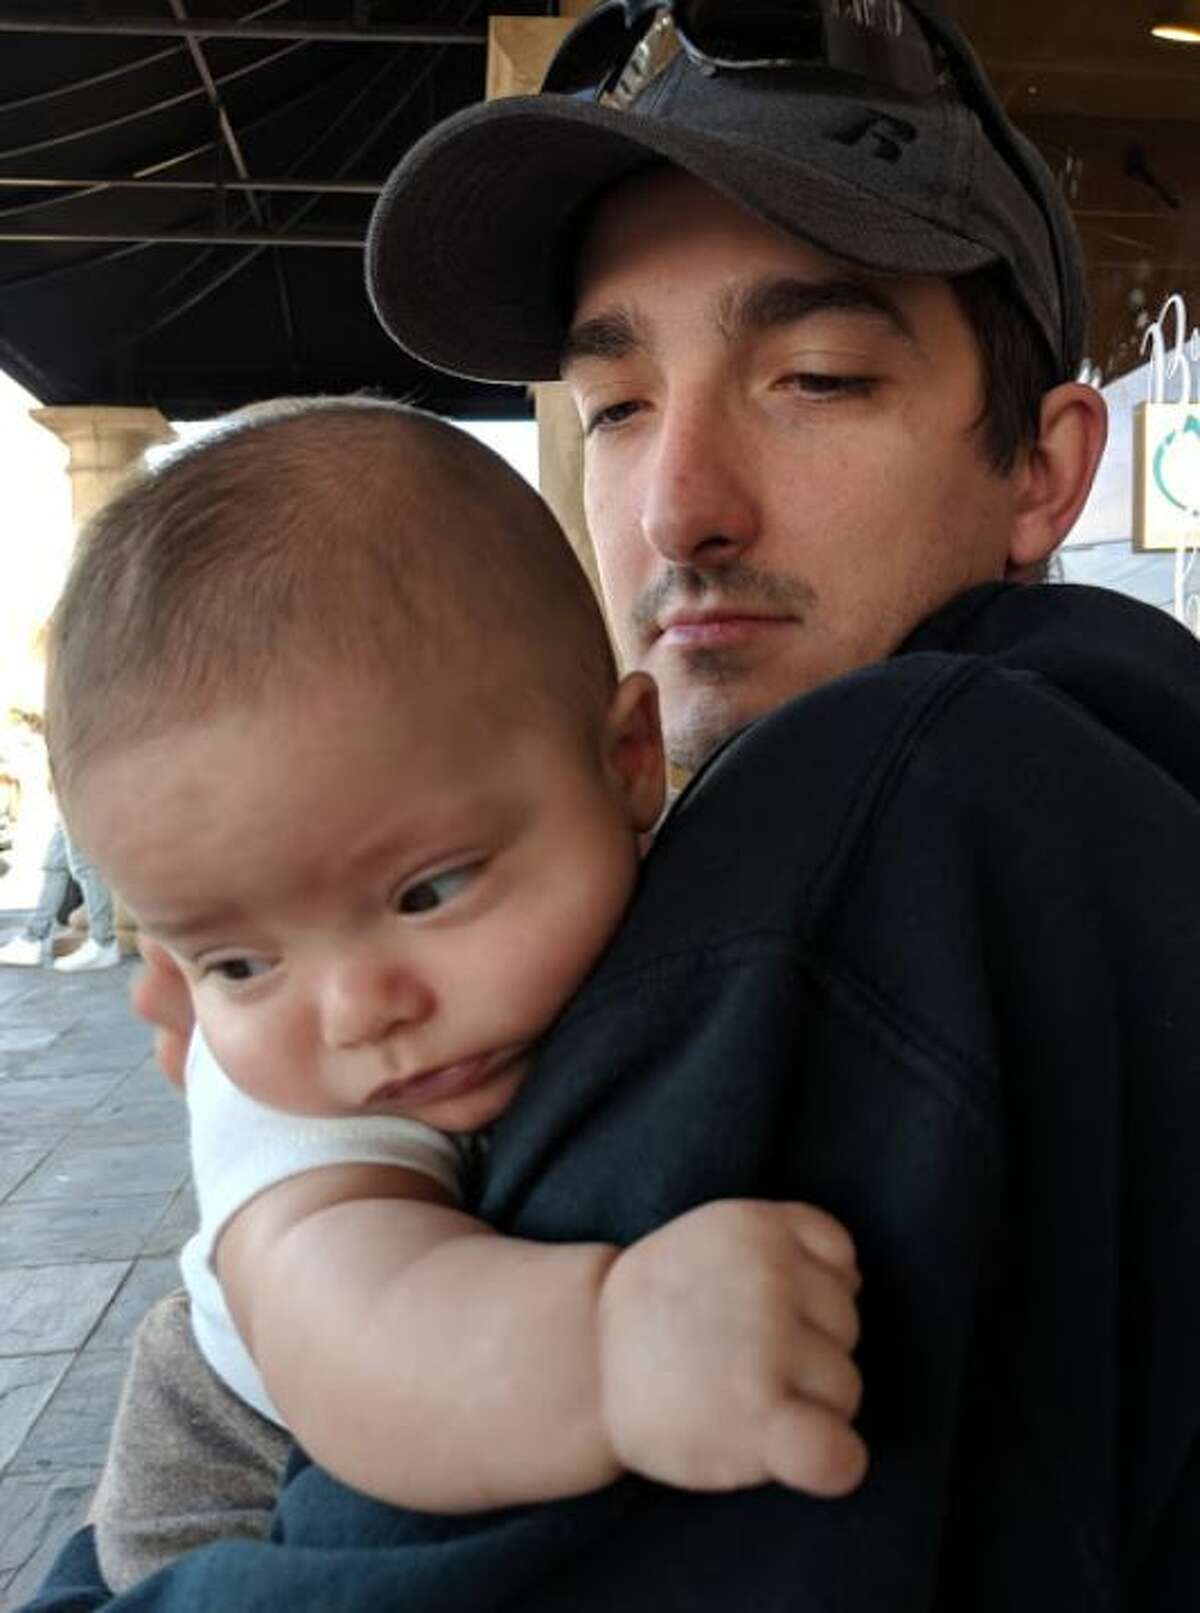 Kris Krischke and his 5-month-old son, Evrain, of Groves, wait as Kris' wife, Jena, deals with evacuation money at 250 N. Dowlen Road on Thursday.